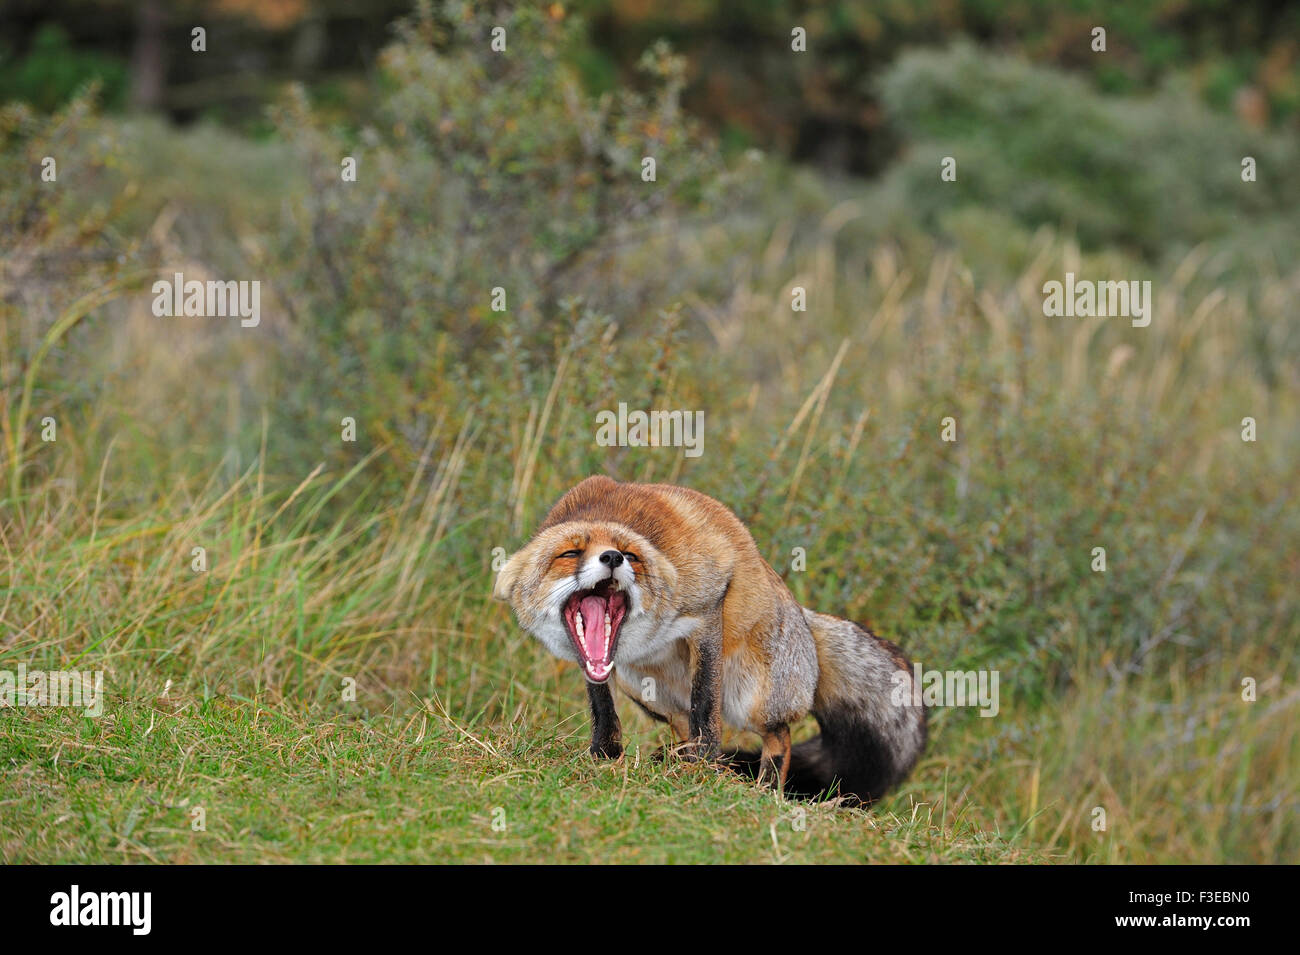 Aggressive Red fox (Vulpes vulpes) in defensive posture showing teeth and keeping ears flat - Stock Image